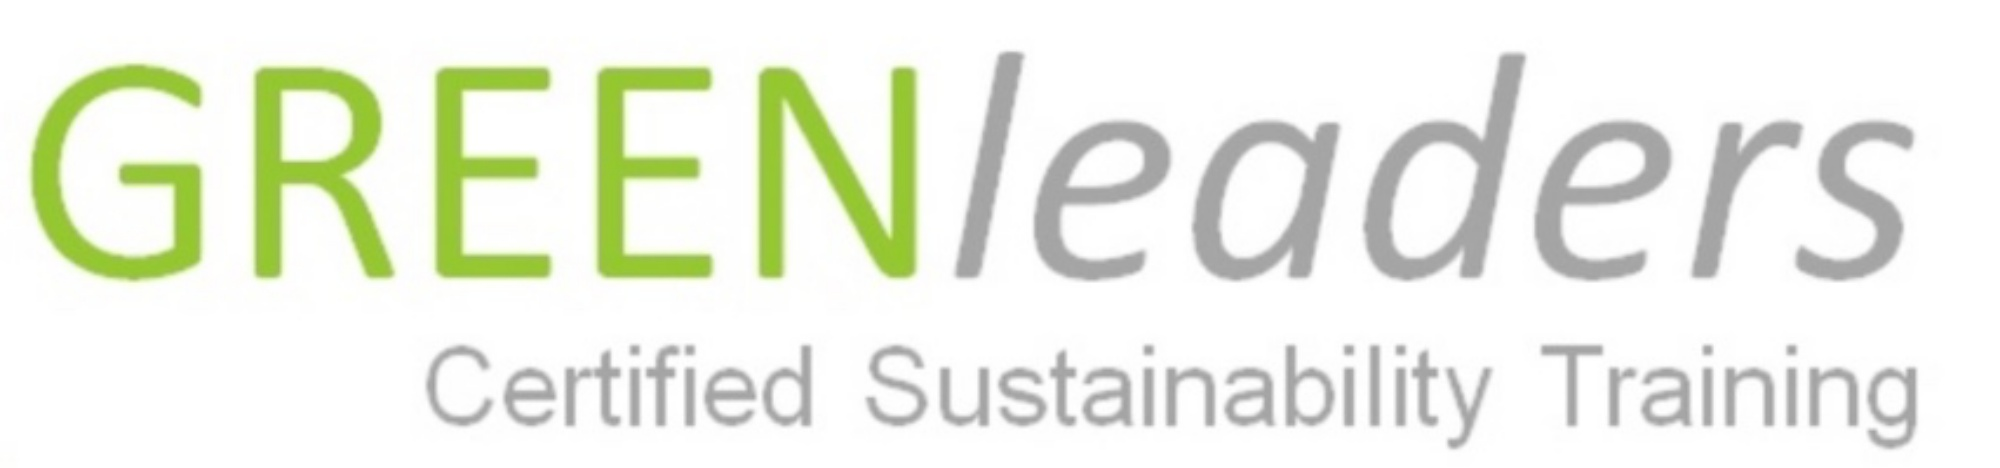 GREENleaders Certified Sustainability Training